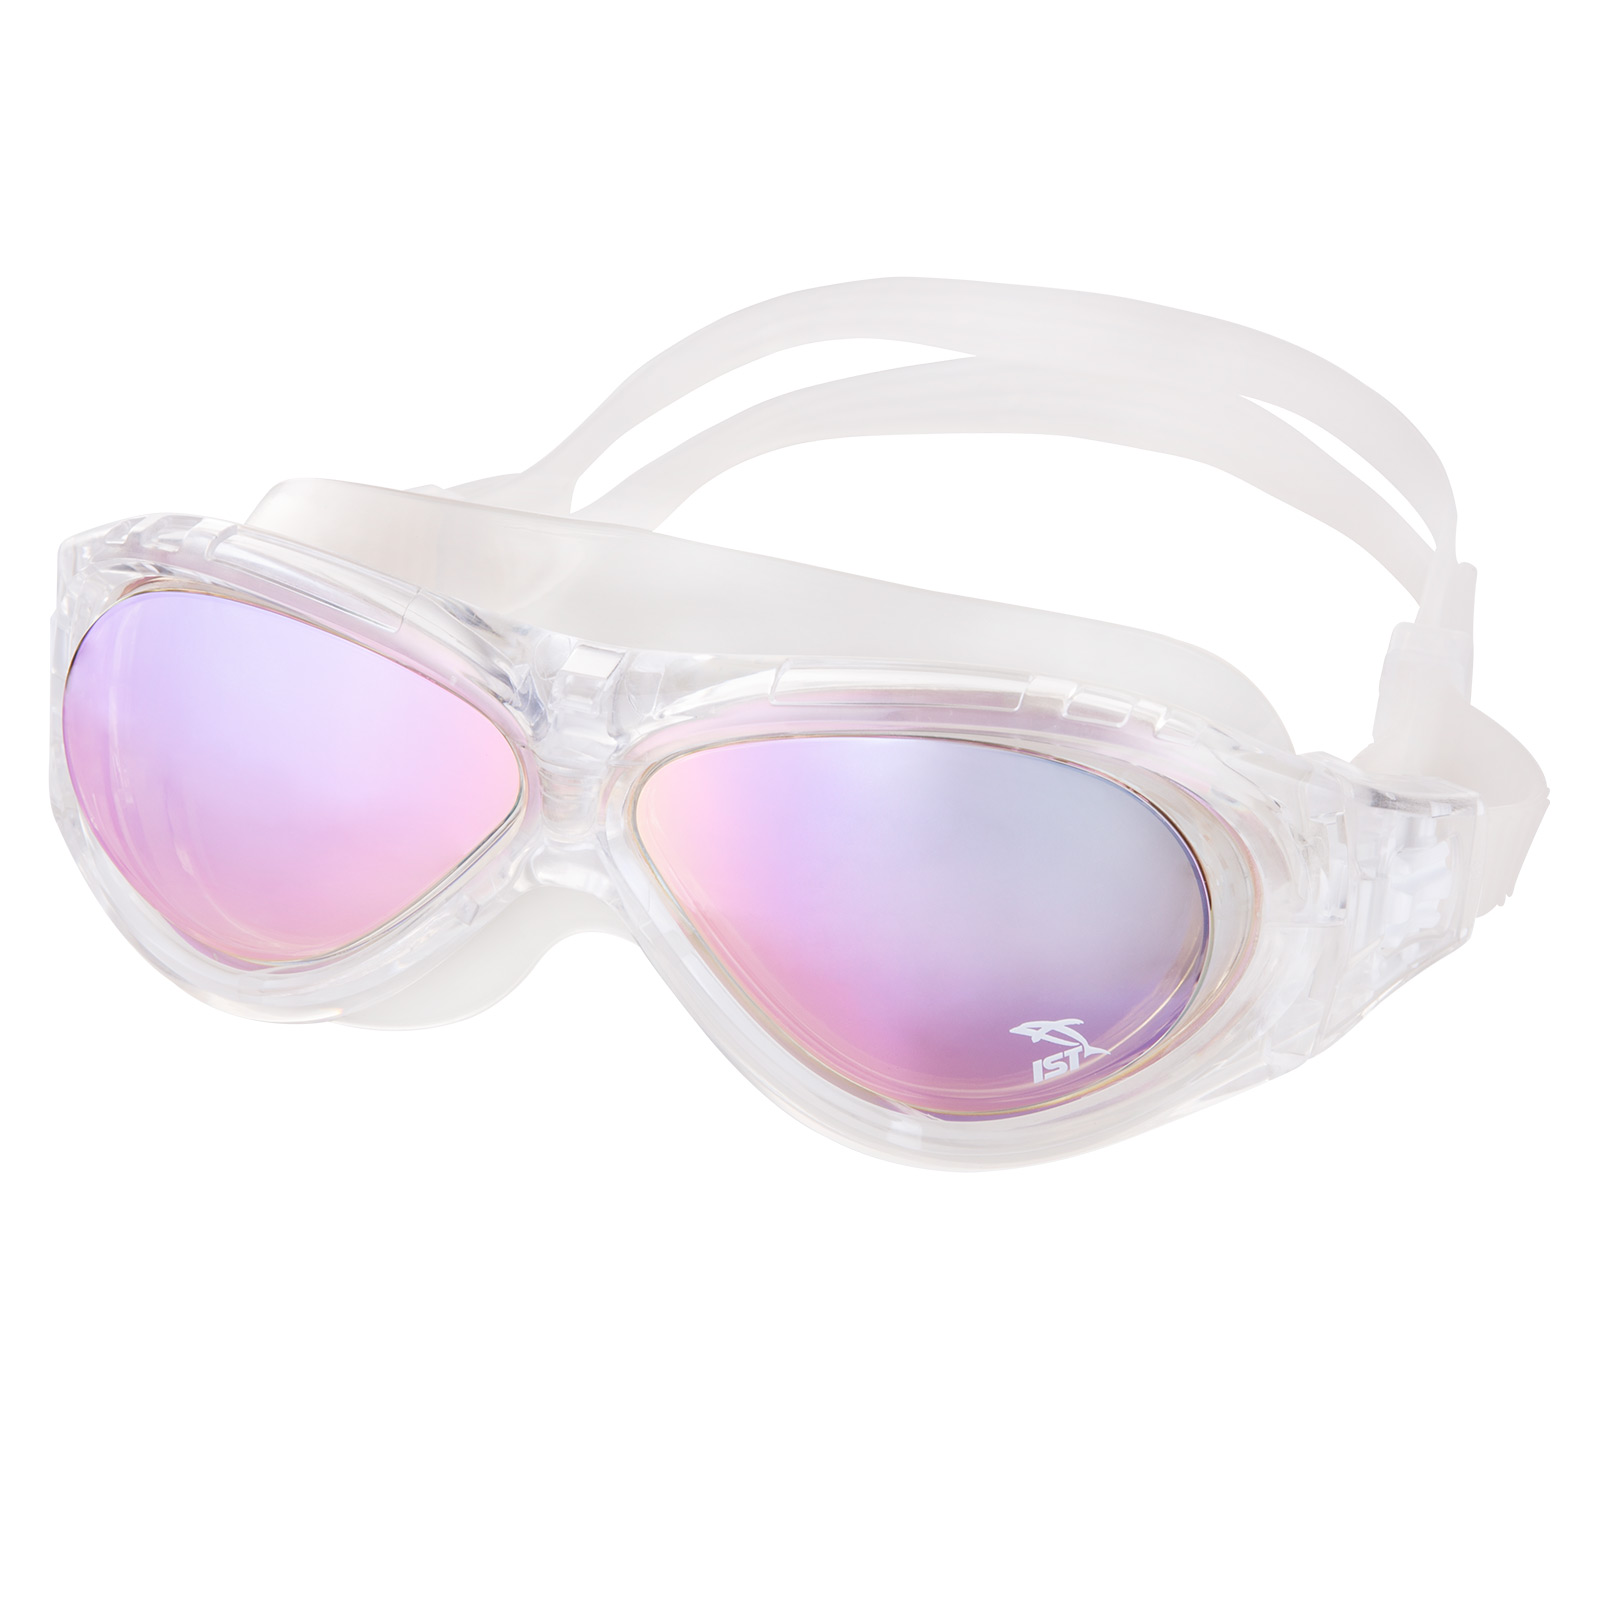 Large Frame Swimming Goggle